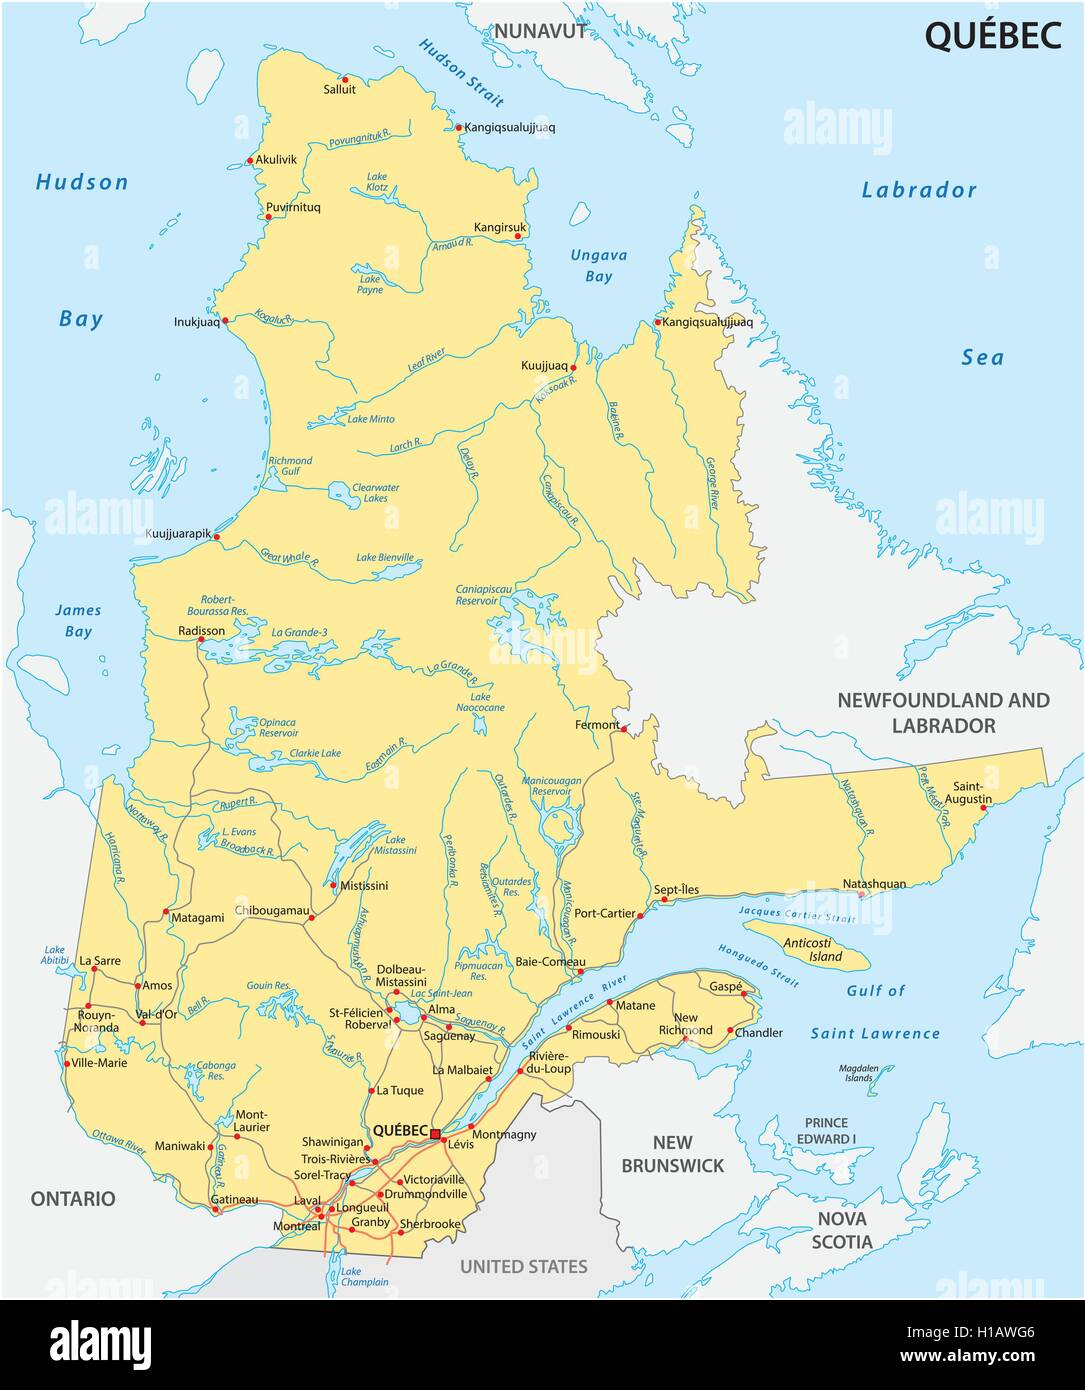 Quebec Map Stock Photos Quebec Map Stock Images Alamy